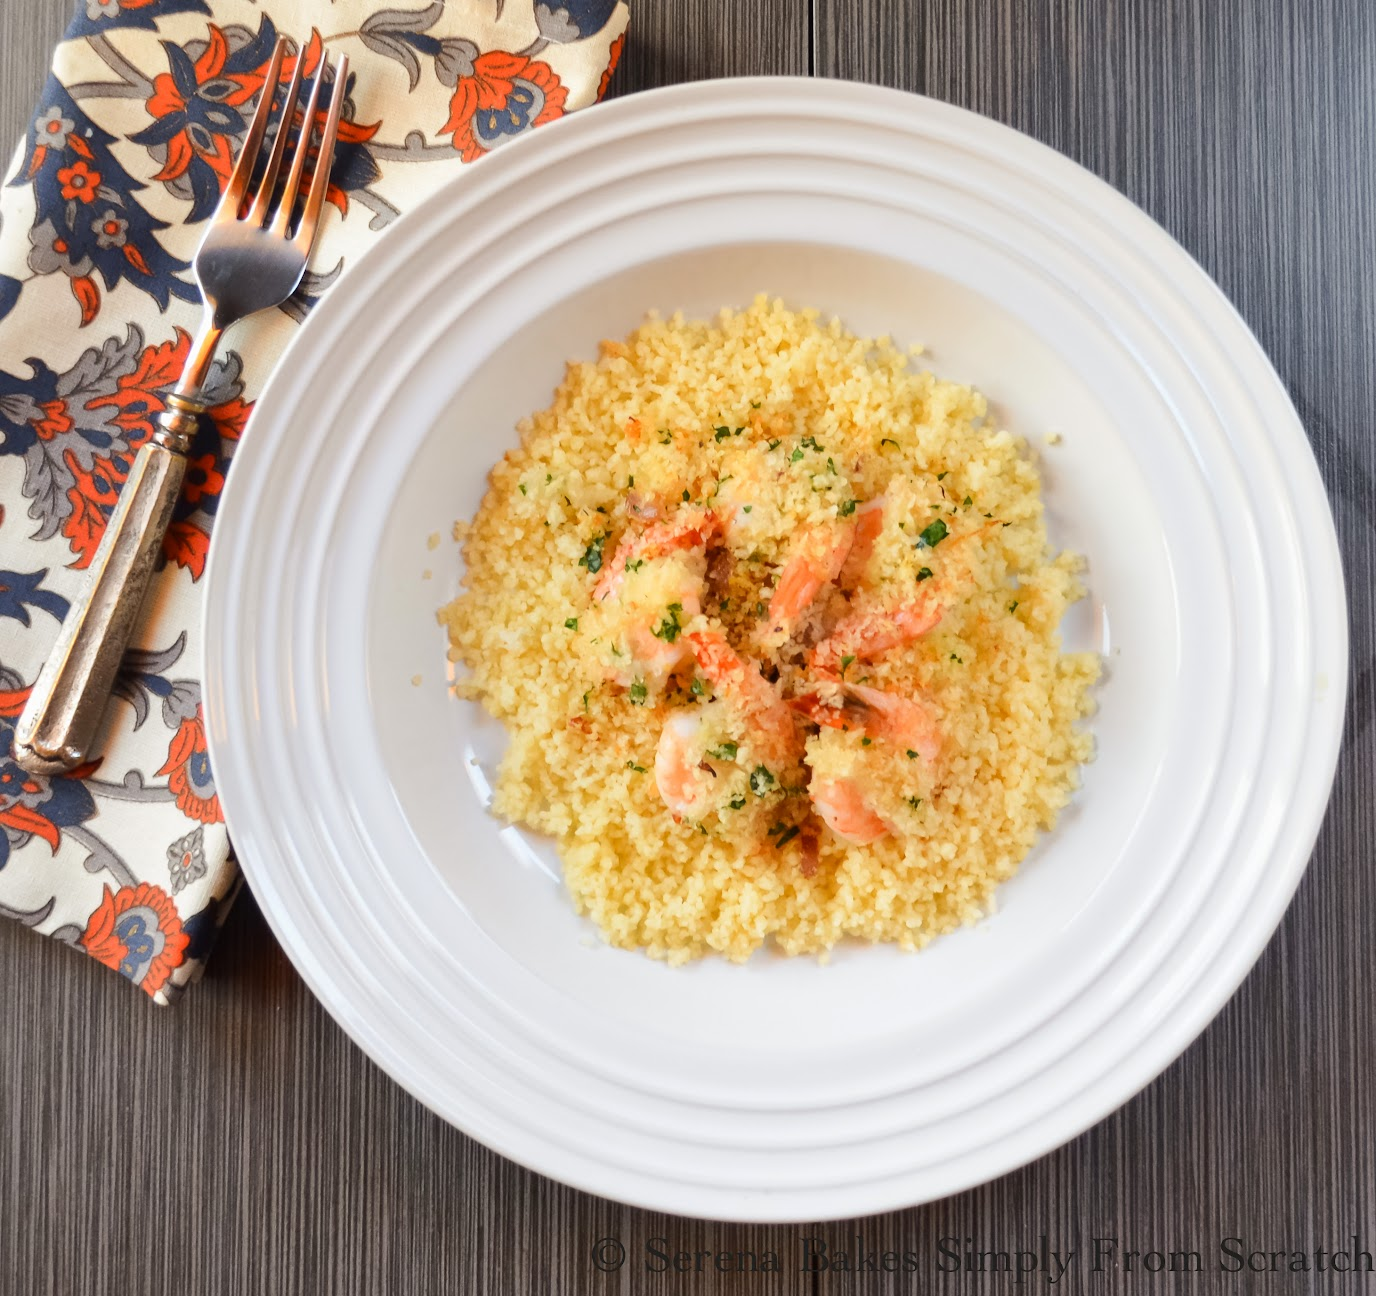 Quick Herbed Panko Baked Shrimp with Couscous under 500 calories per serving and done in under 30 minutes | Serena Bakes Simply From Scratch